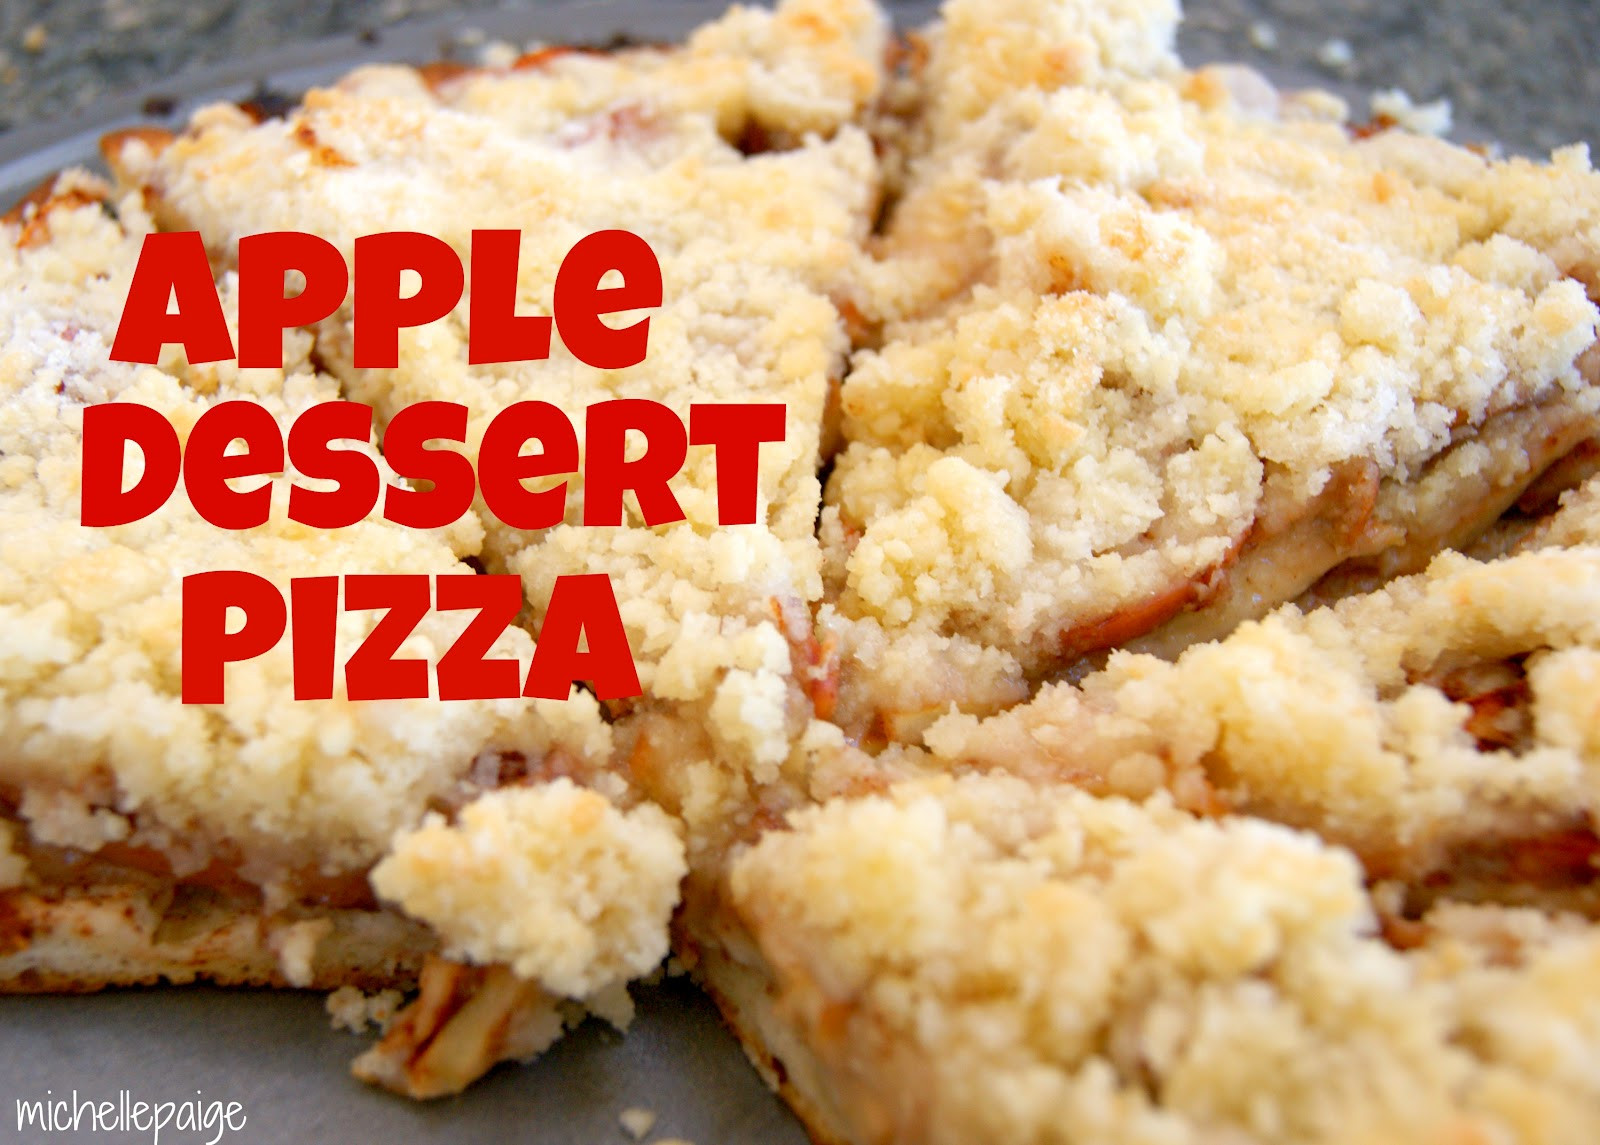 Easy Apple Dessert  michelle paige blogs Easy Apple Dessert Pizza